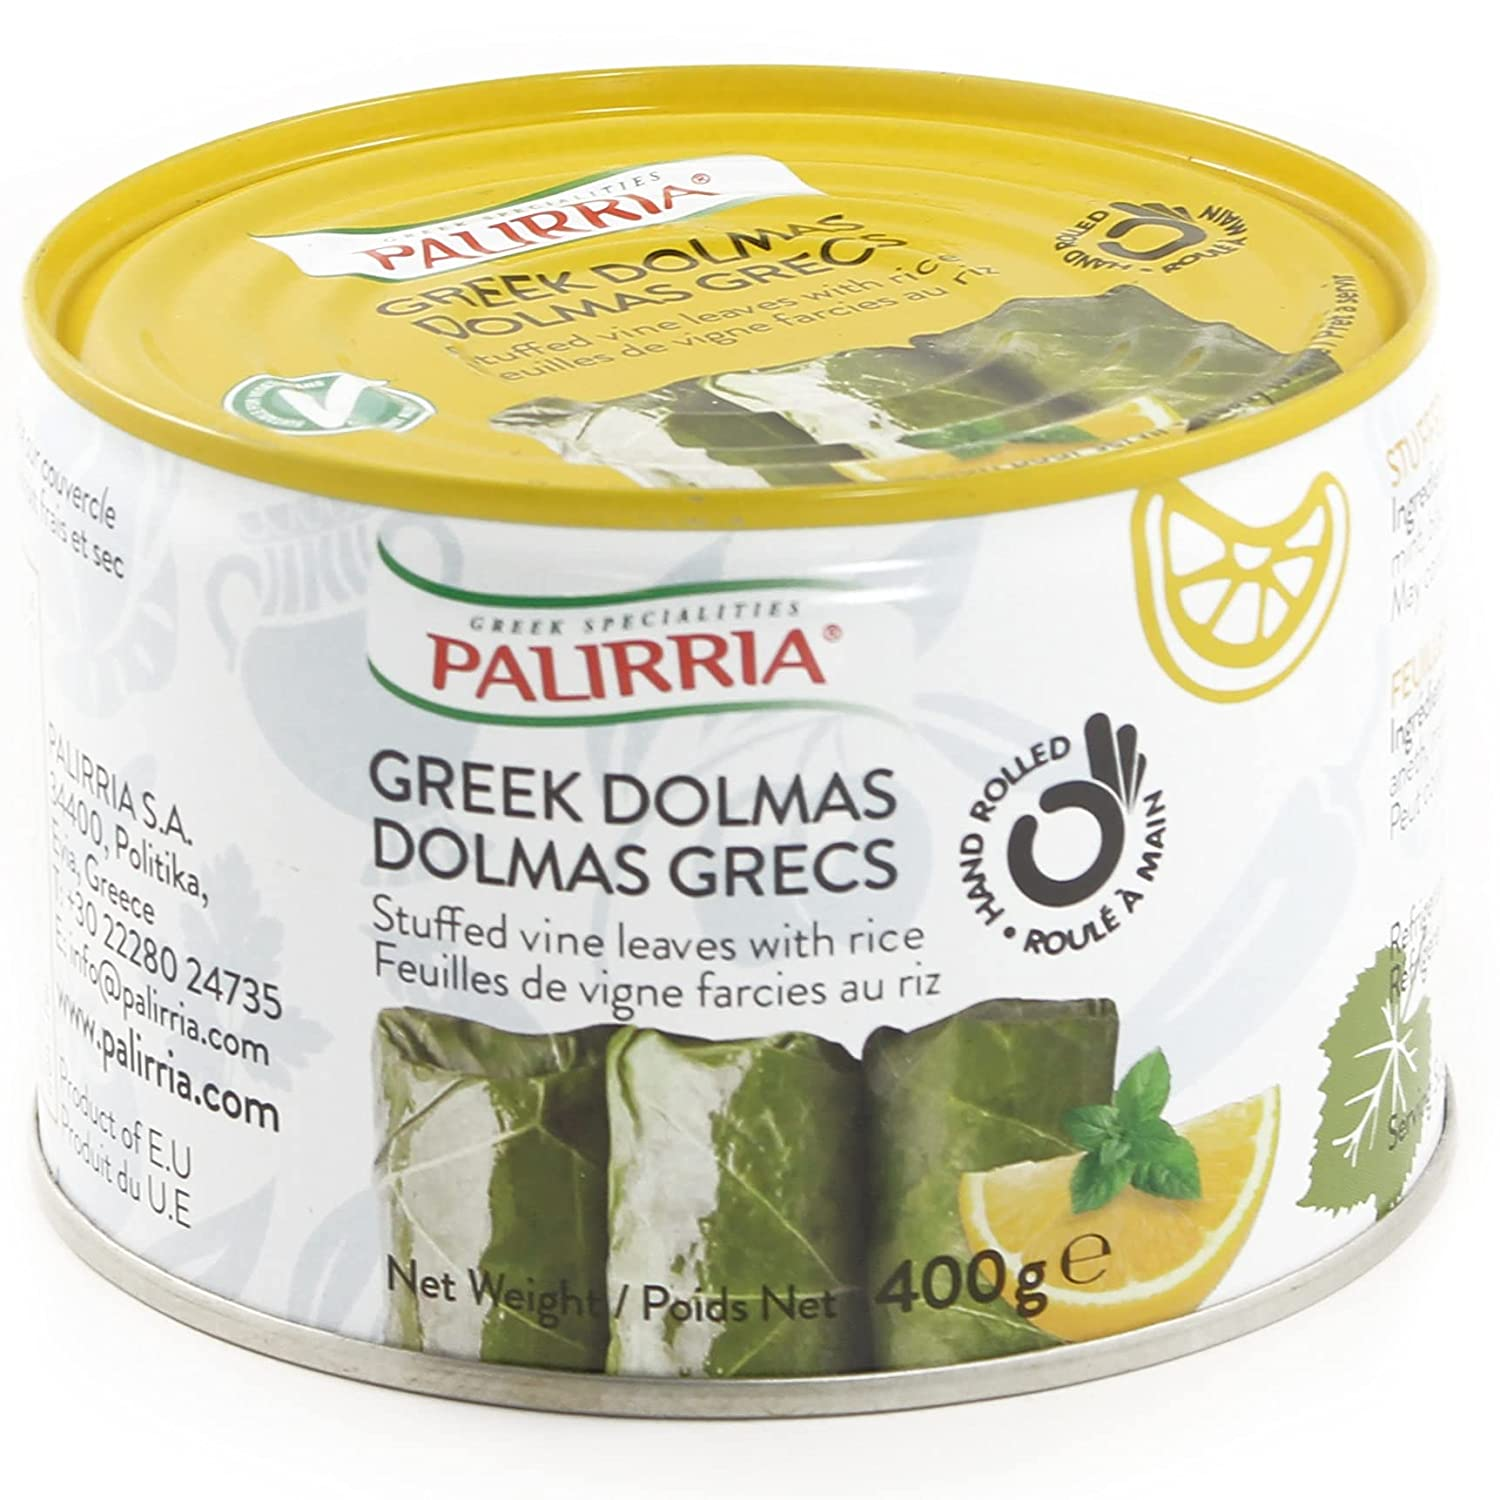 Palirria Greek Popular shop is the lowest price challenge Dolmas 14 Bargain sale Ounce 3 of Pack Cans